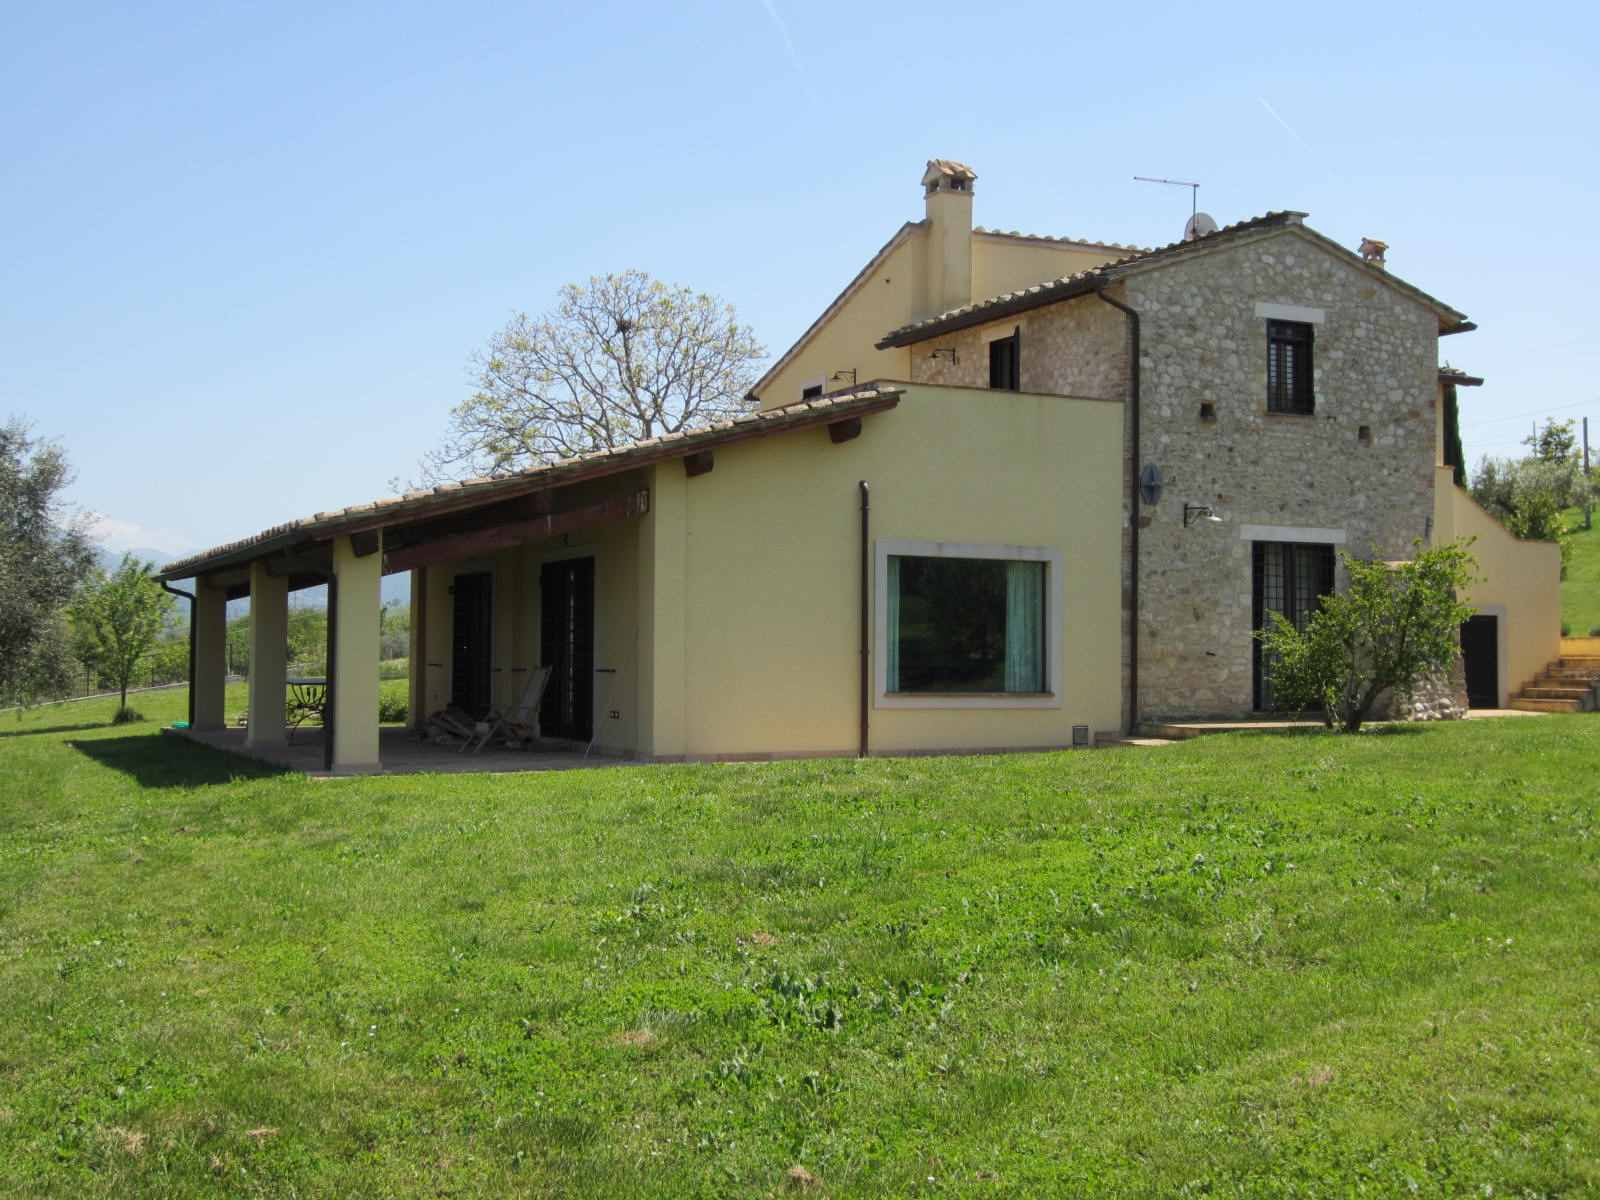 Villa in campagna come proteggerla for Idee per case di campagna